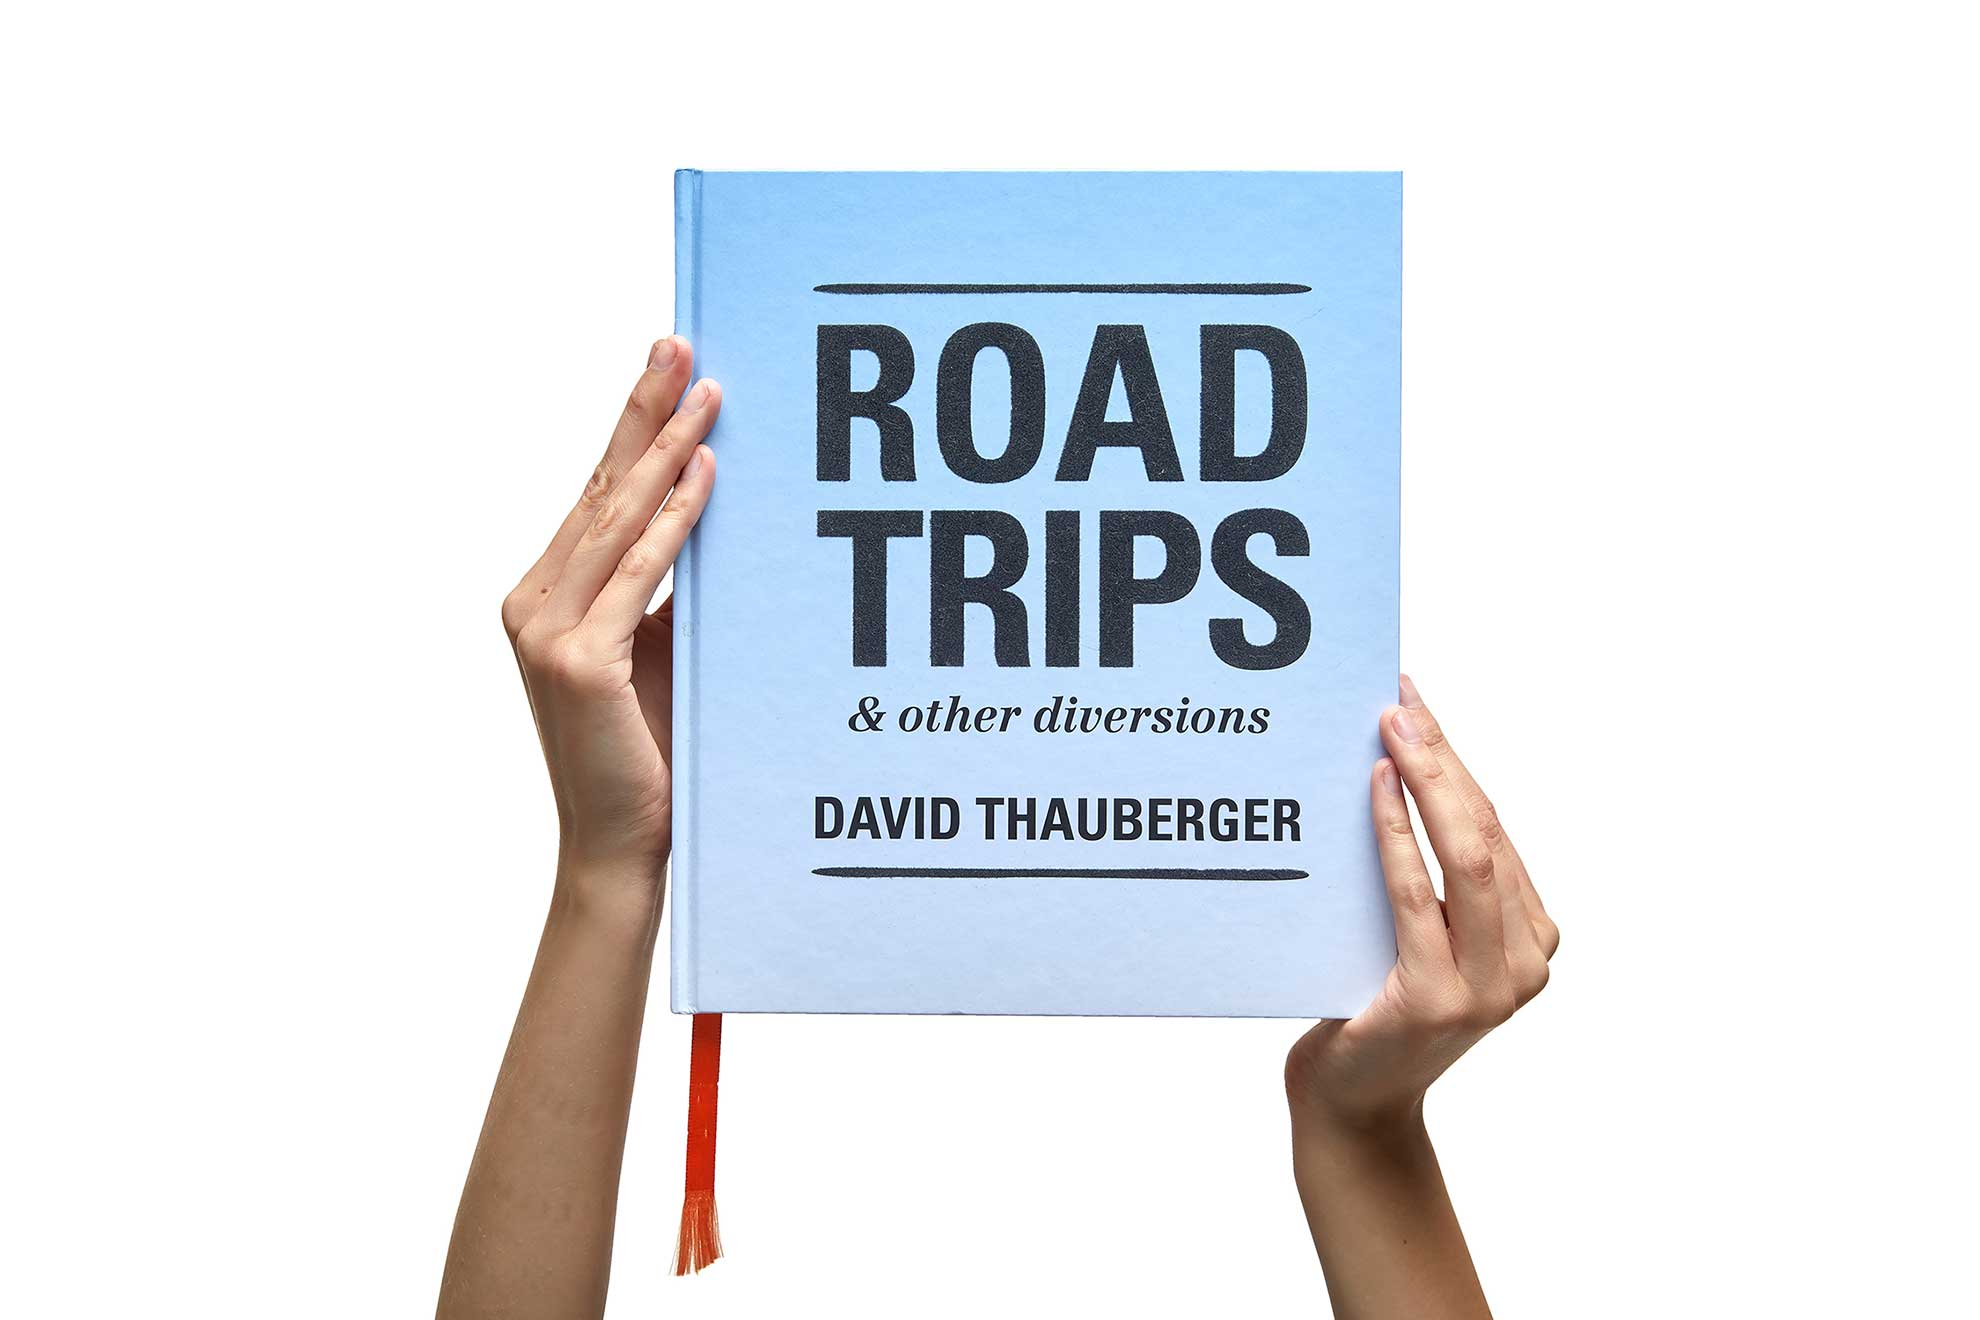 Road Trips - Editorial Design